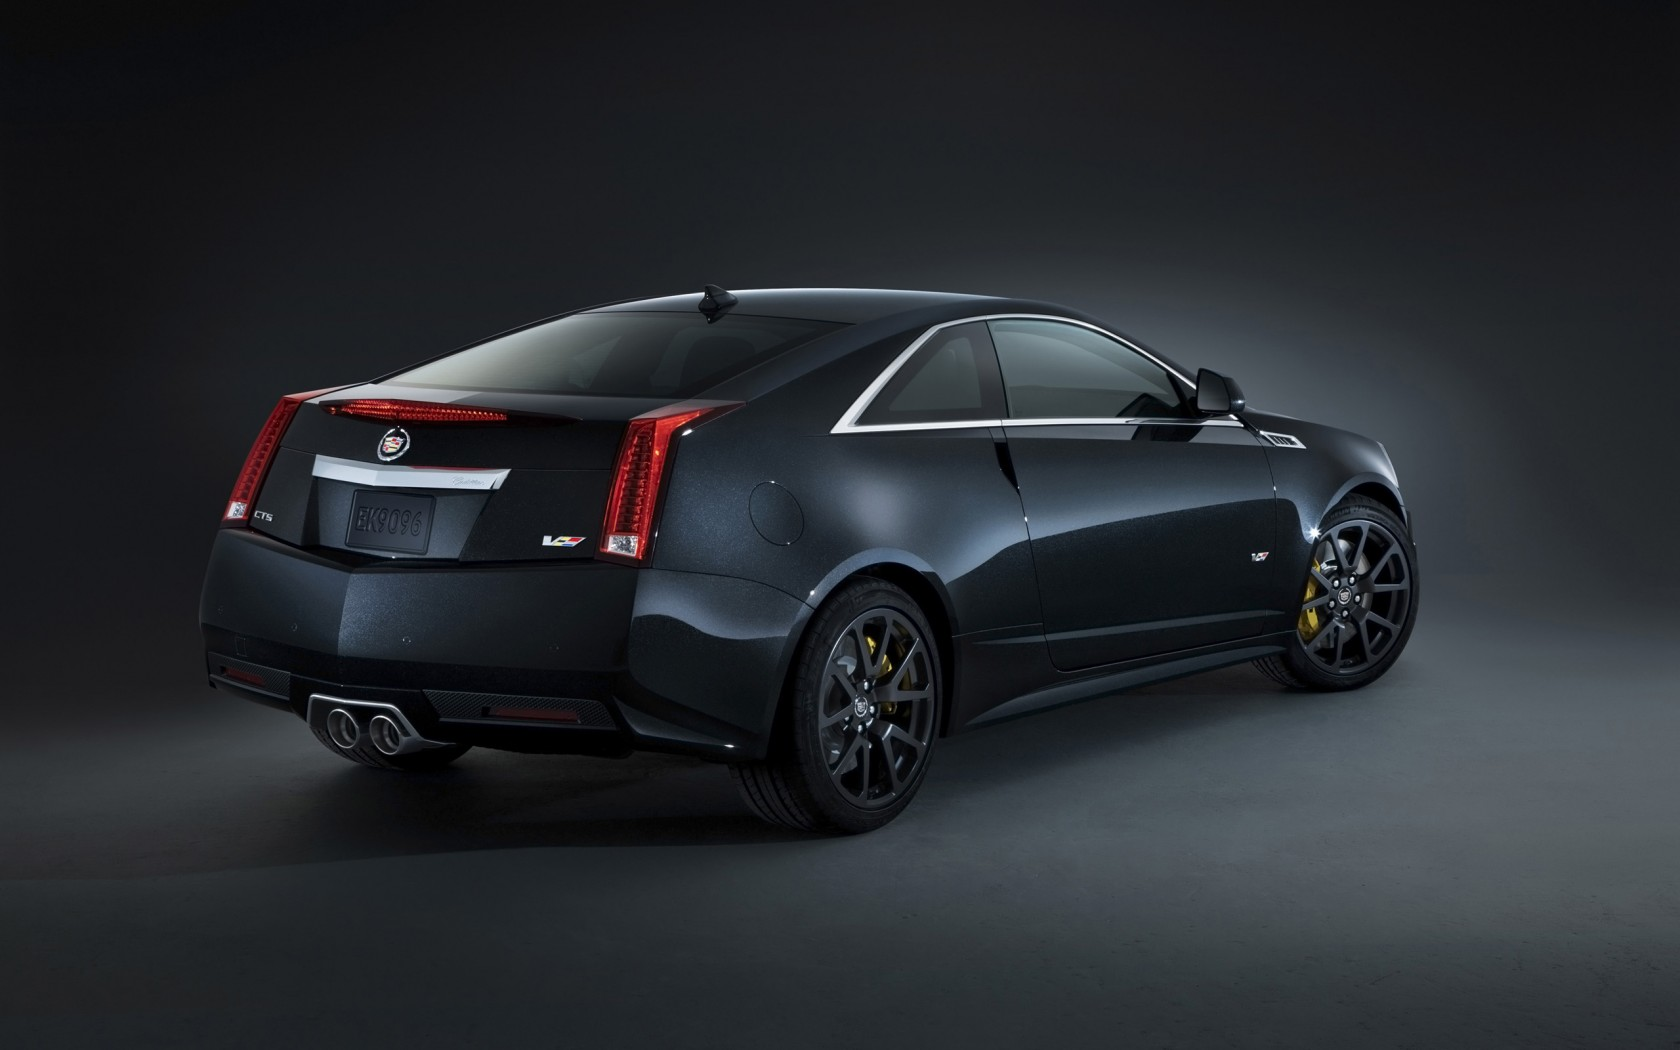 2014 cadillac cts v coupe 2 wallpaper hd car wallpapers. Black Bedroom Furniture Sets. Home Design Ideas